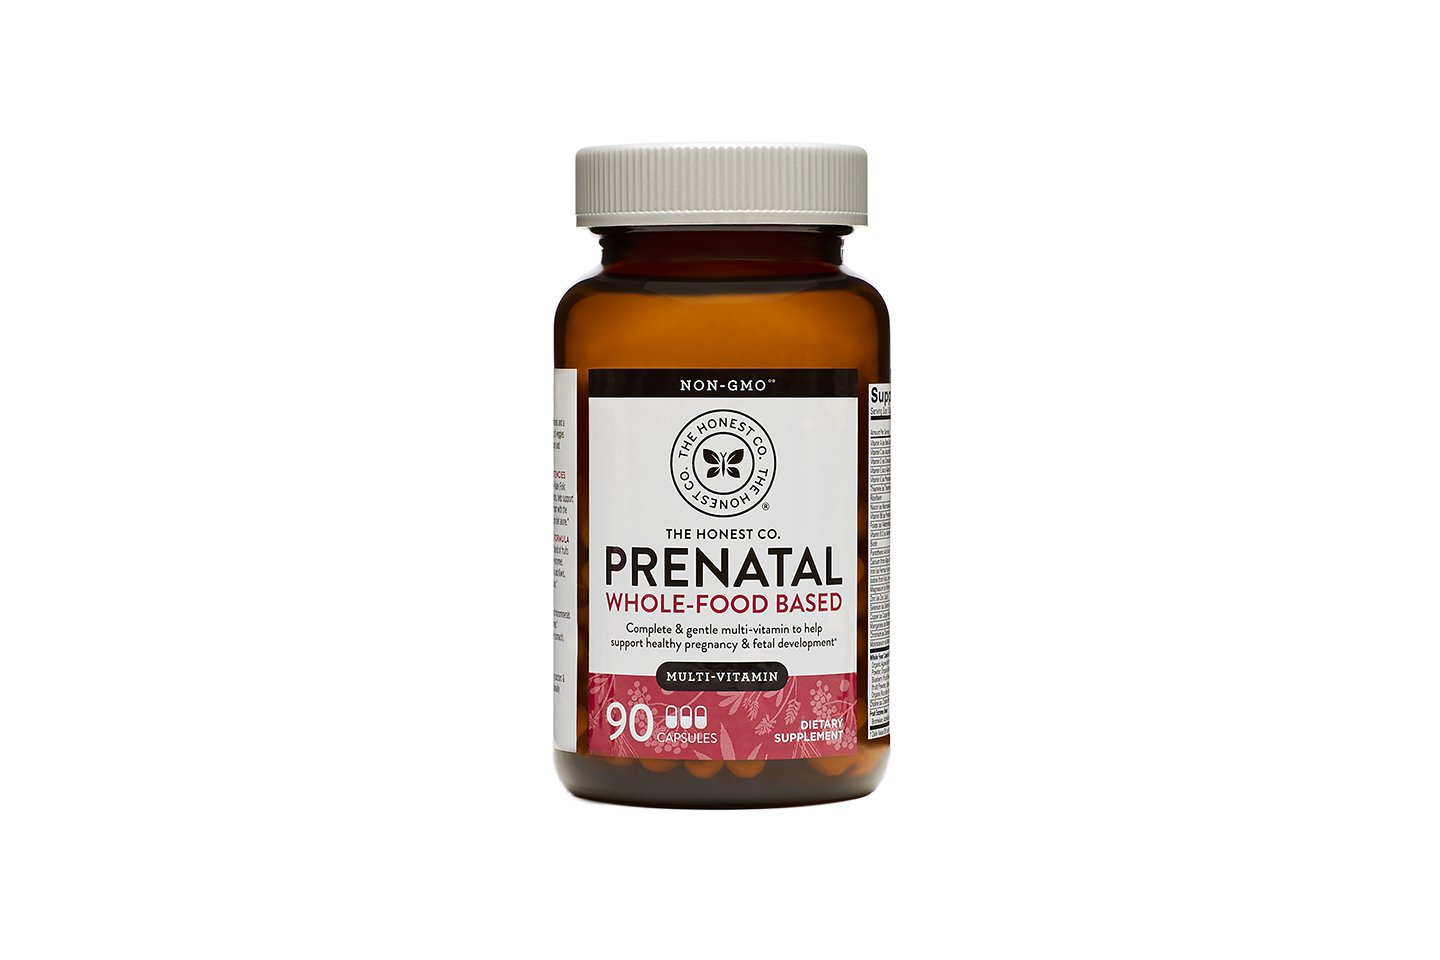 The Honest Company Whole-Food Based Prenatal, 90 Count